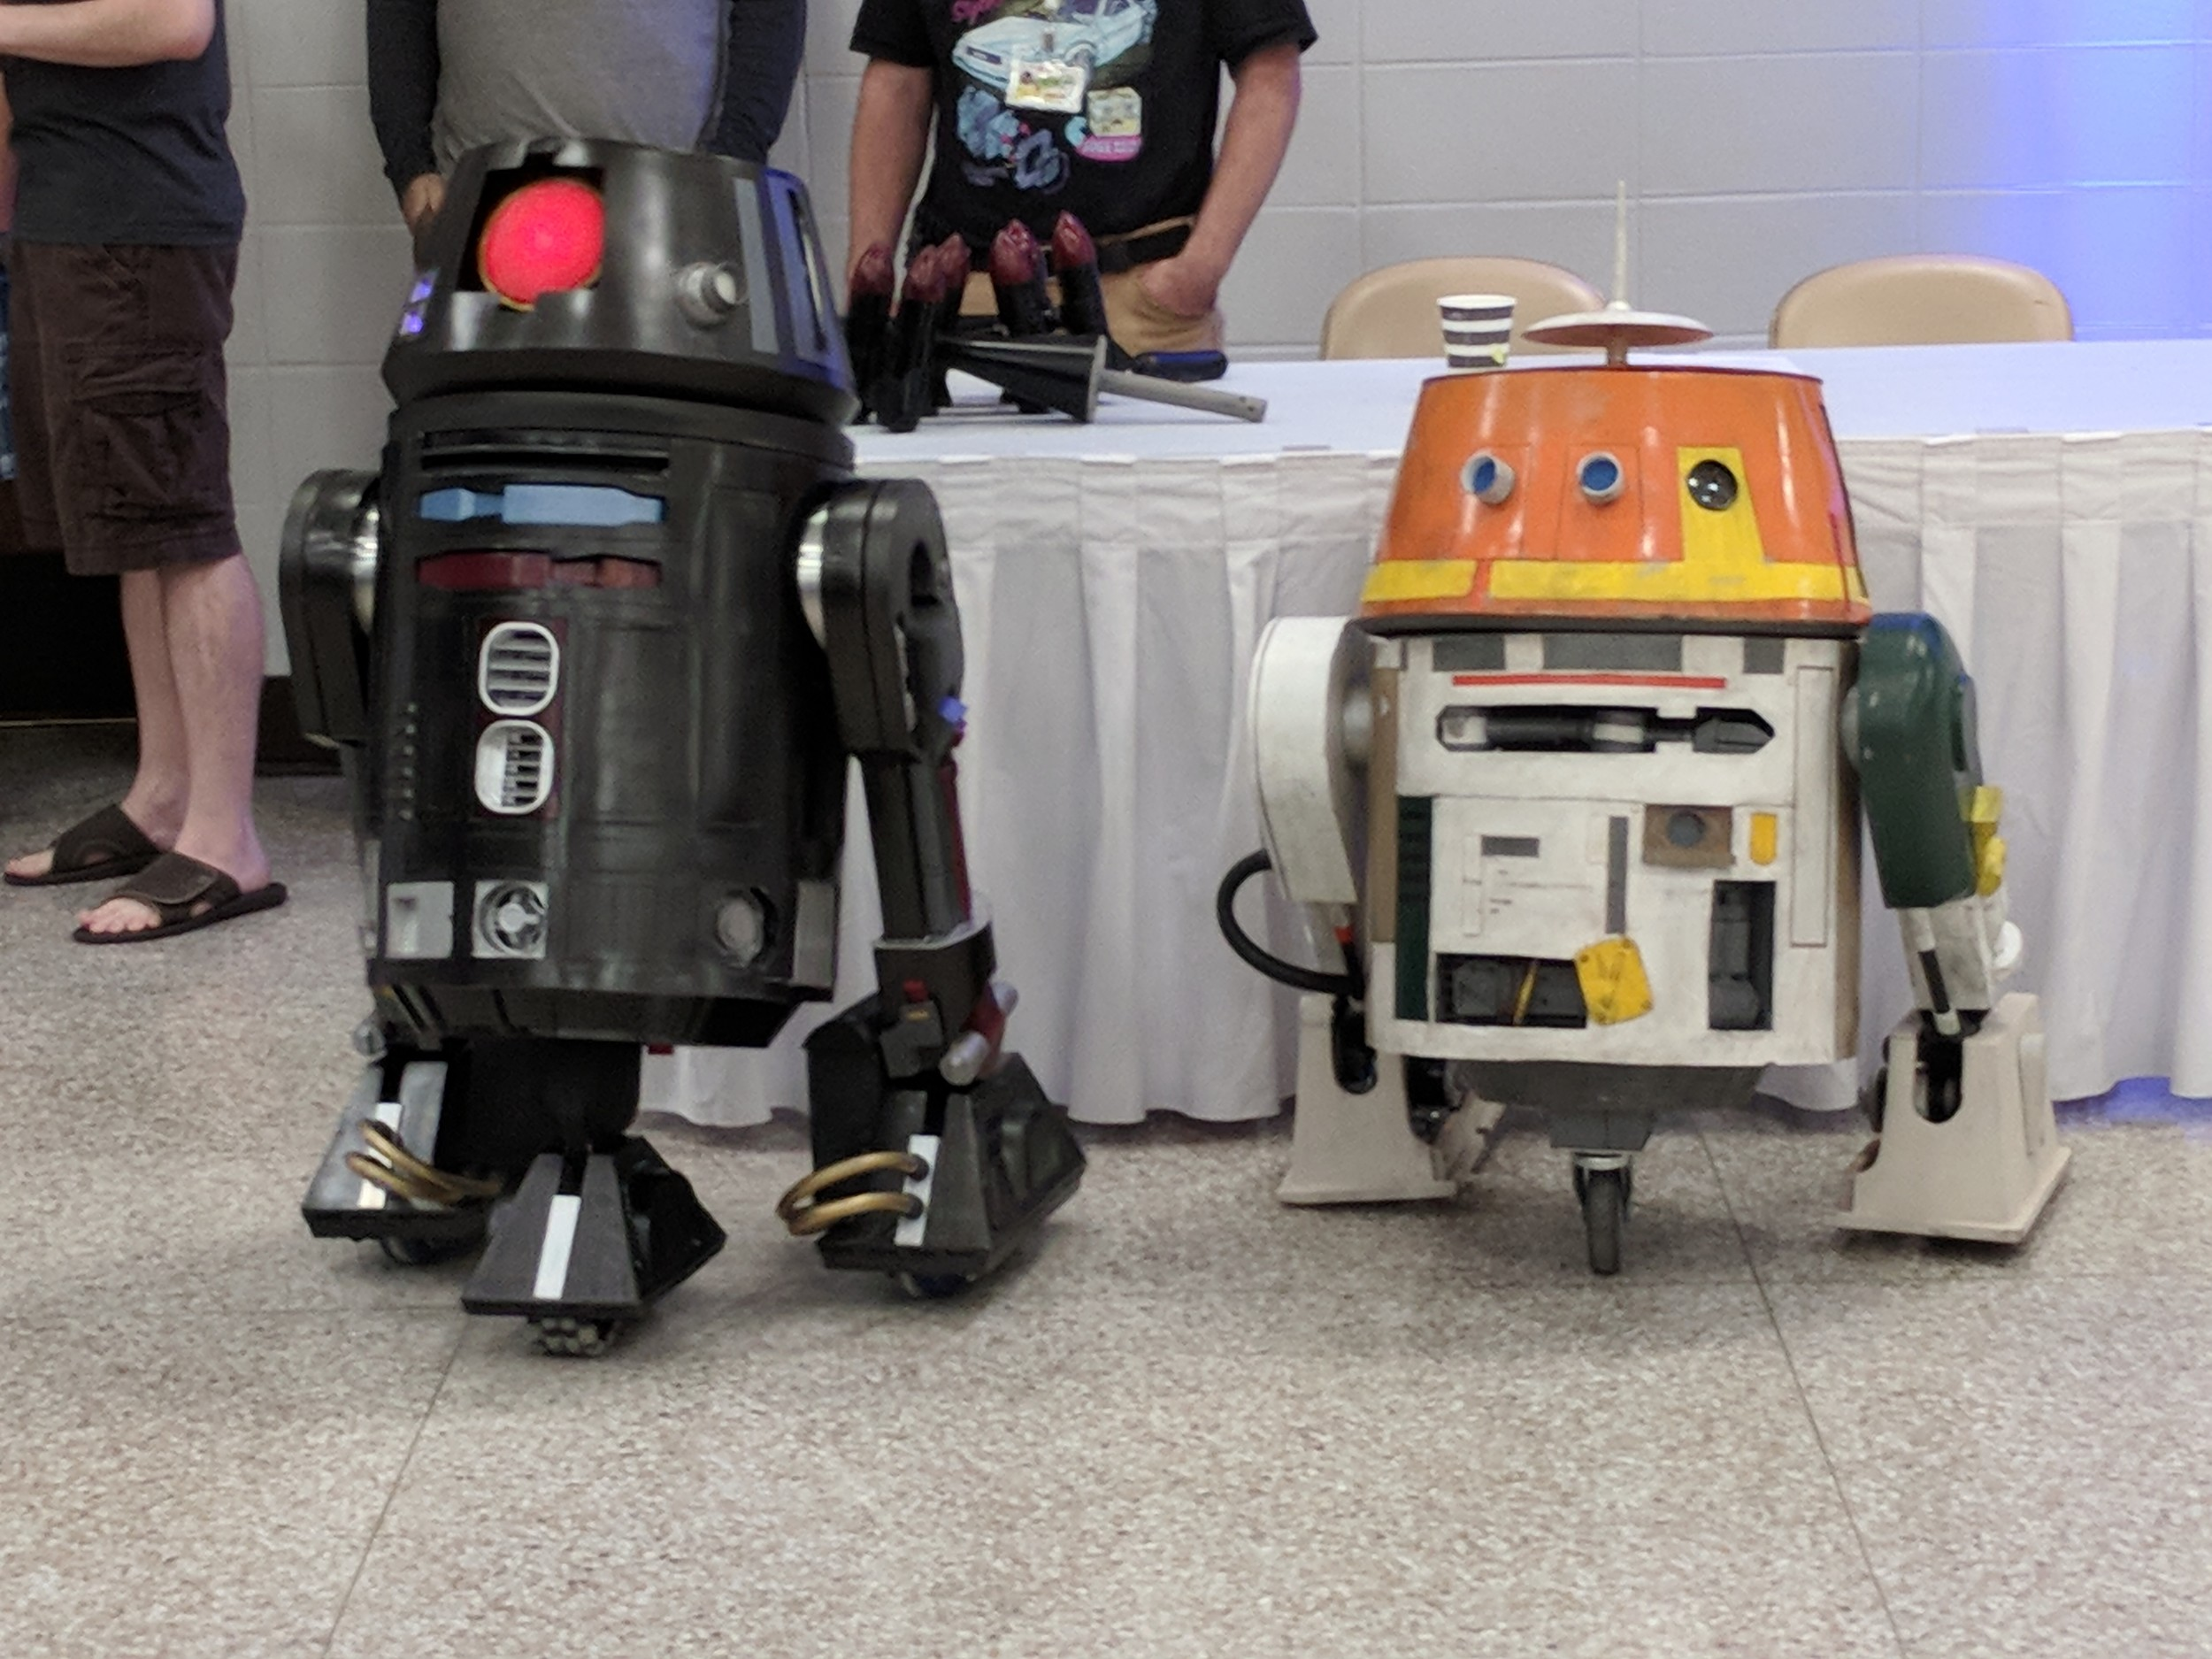 Foley has the droids that you are looking for.